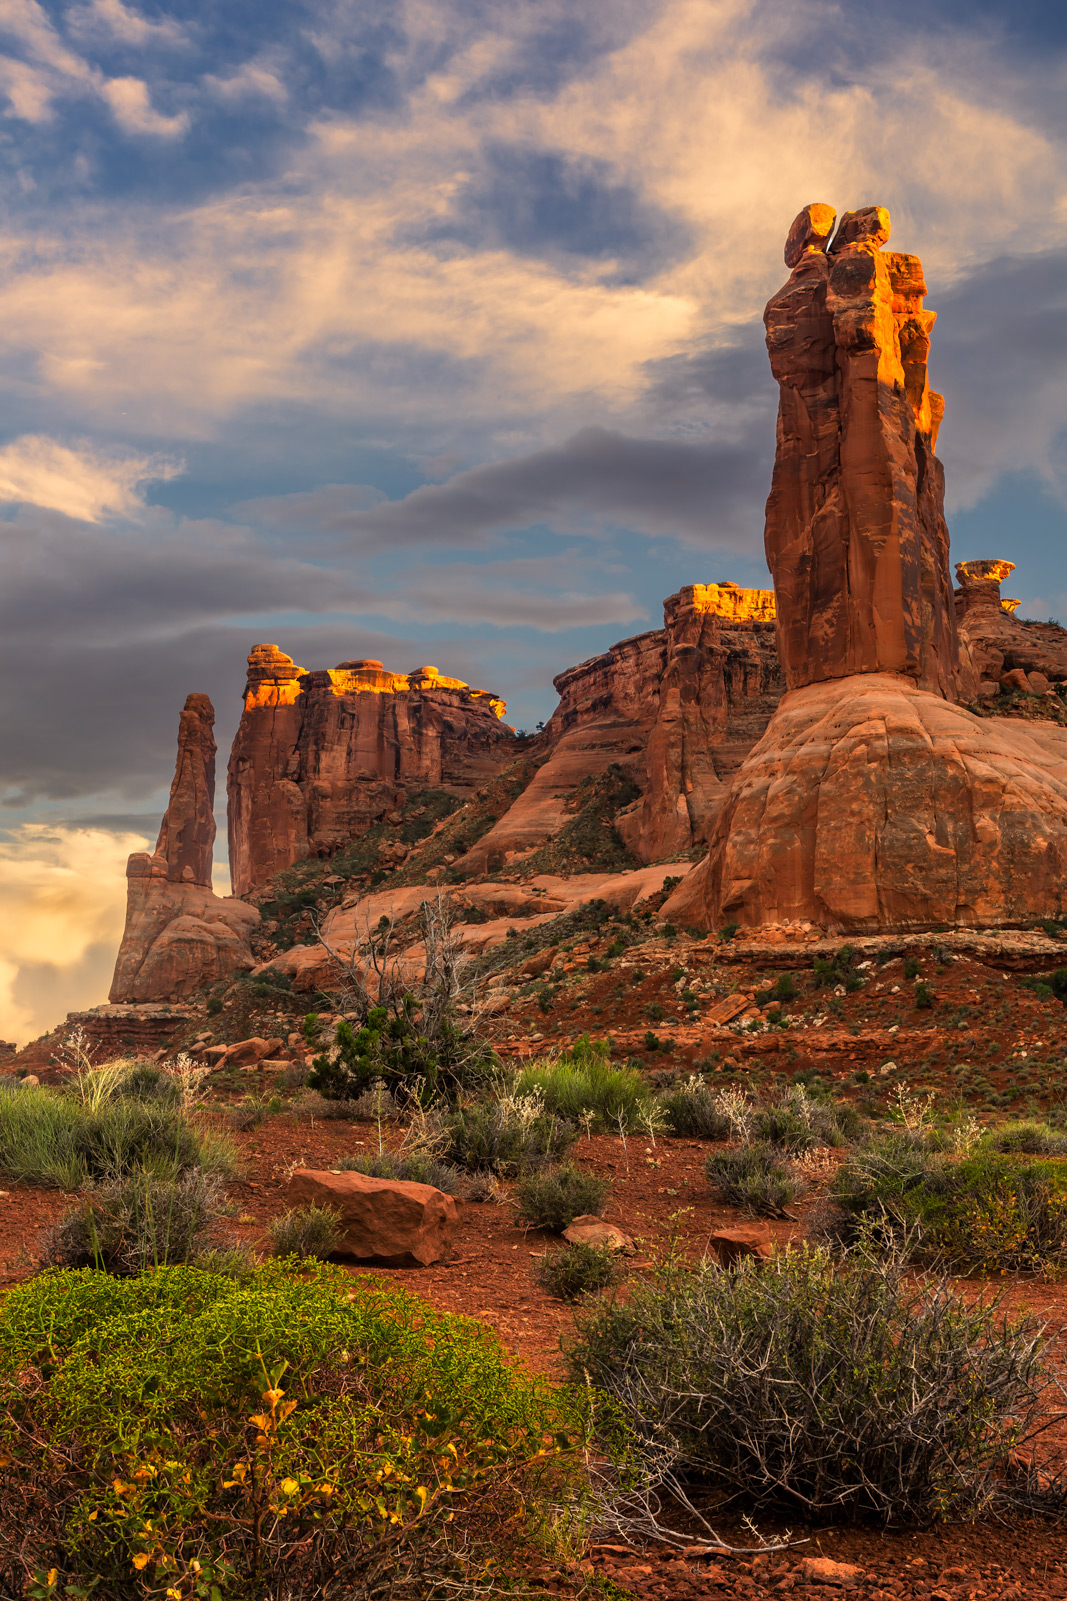 A Limited Edition, Fine Art photograph of soft, sunset color over an impressive Courthouse Tower in Arches National Park in Utah...